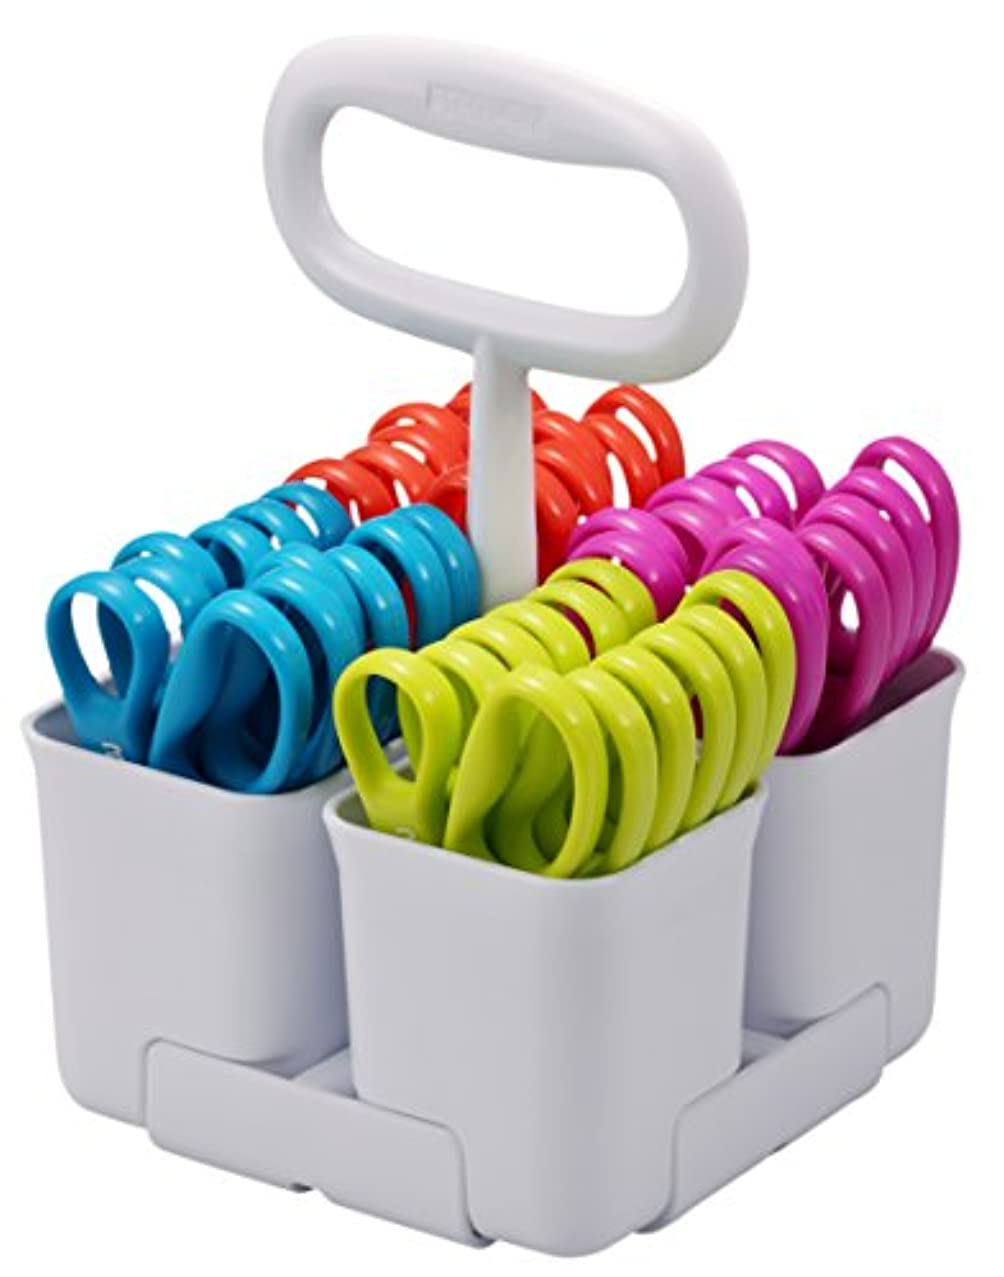 Stanley Removable 4 Cup Scissor Caddy and Guppy 5-Inch Blunt Tip Kids Scissors, 24 Pack (SCICAD-BT24)